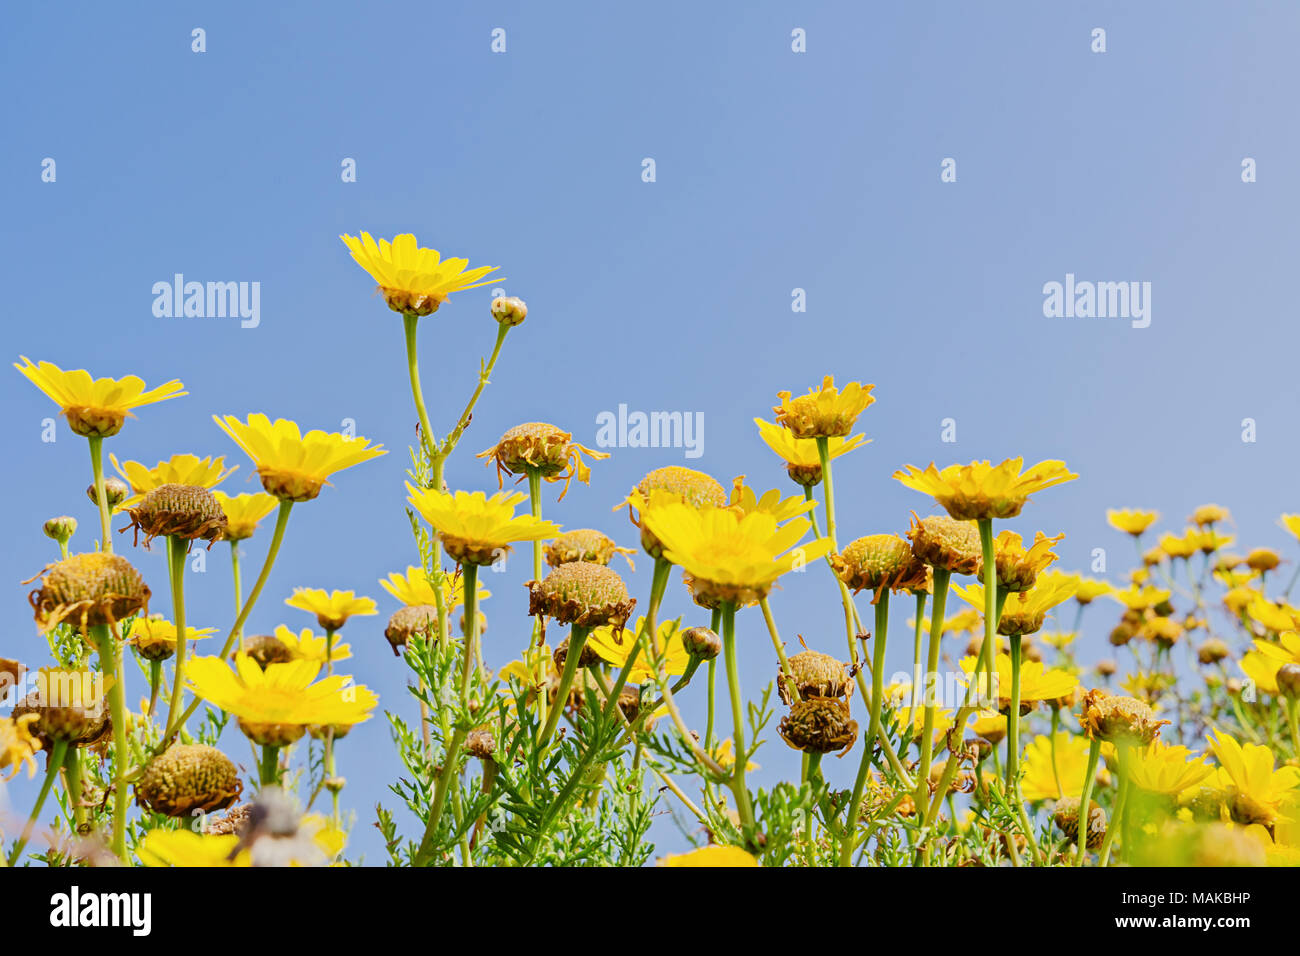 Many Blurred Of Yellow Flowers On Blue Sky Background With Copy